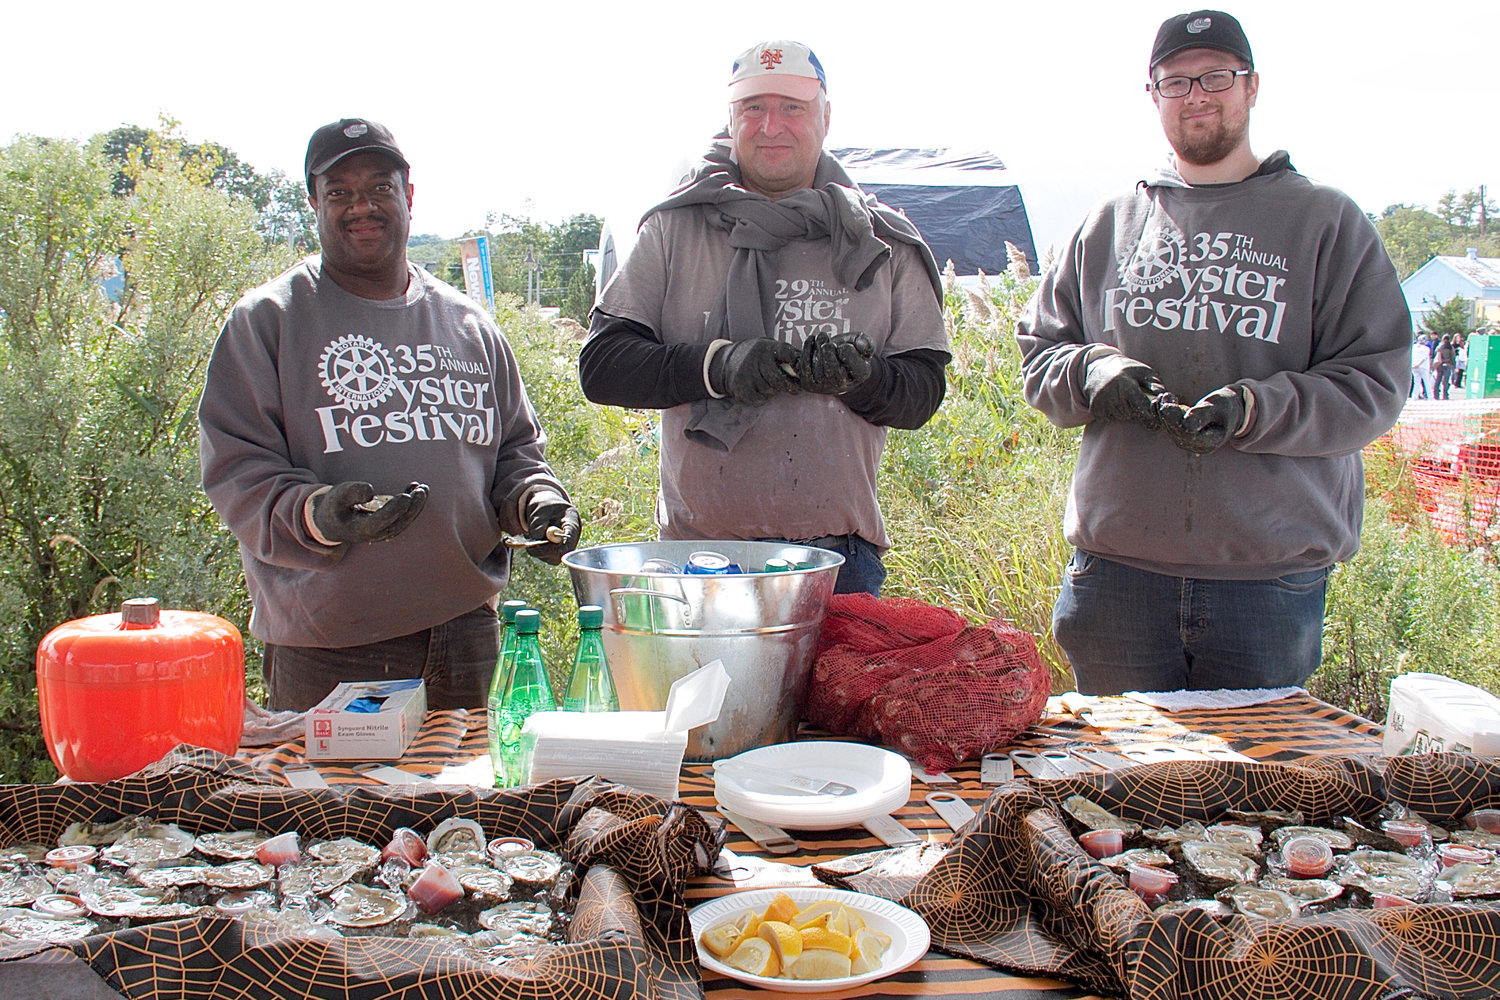 Darrin Banks, Darryl Dowers and Ted Davidson shucked oysters  at the festival.